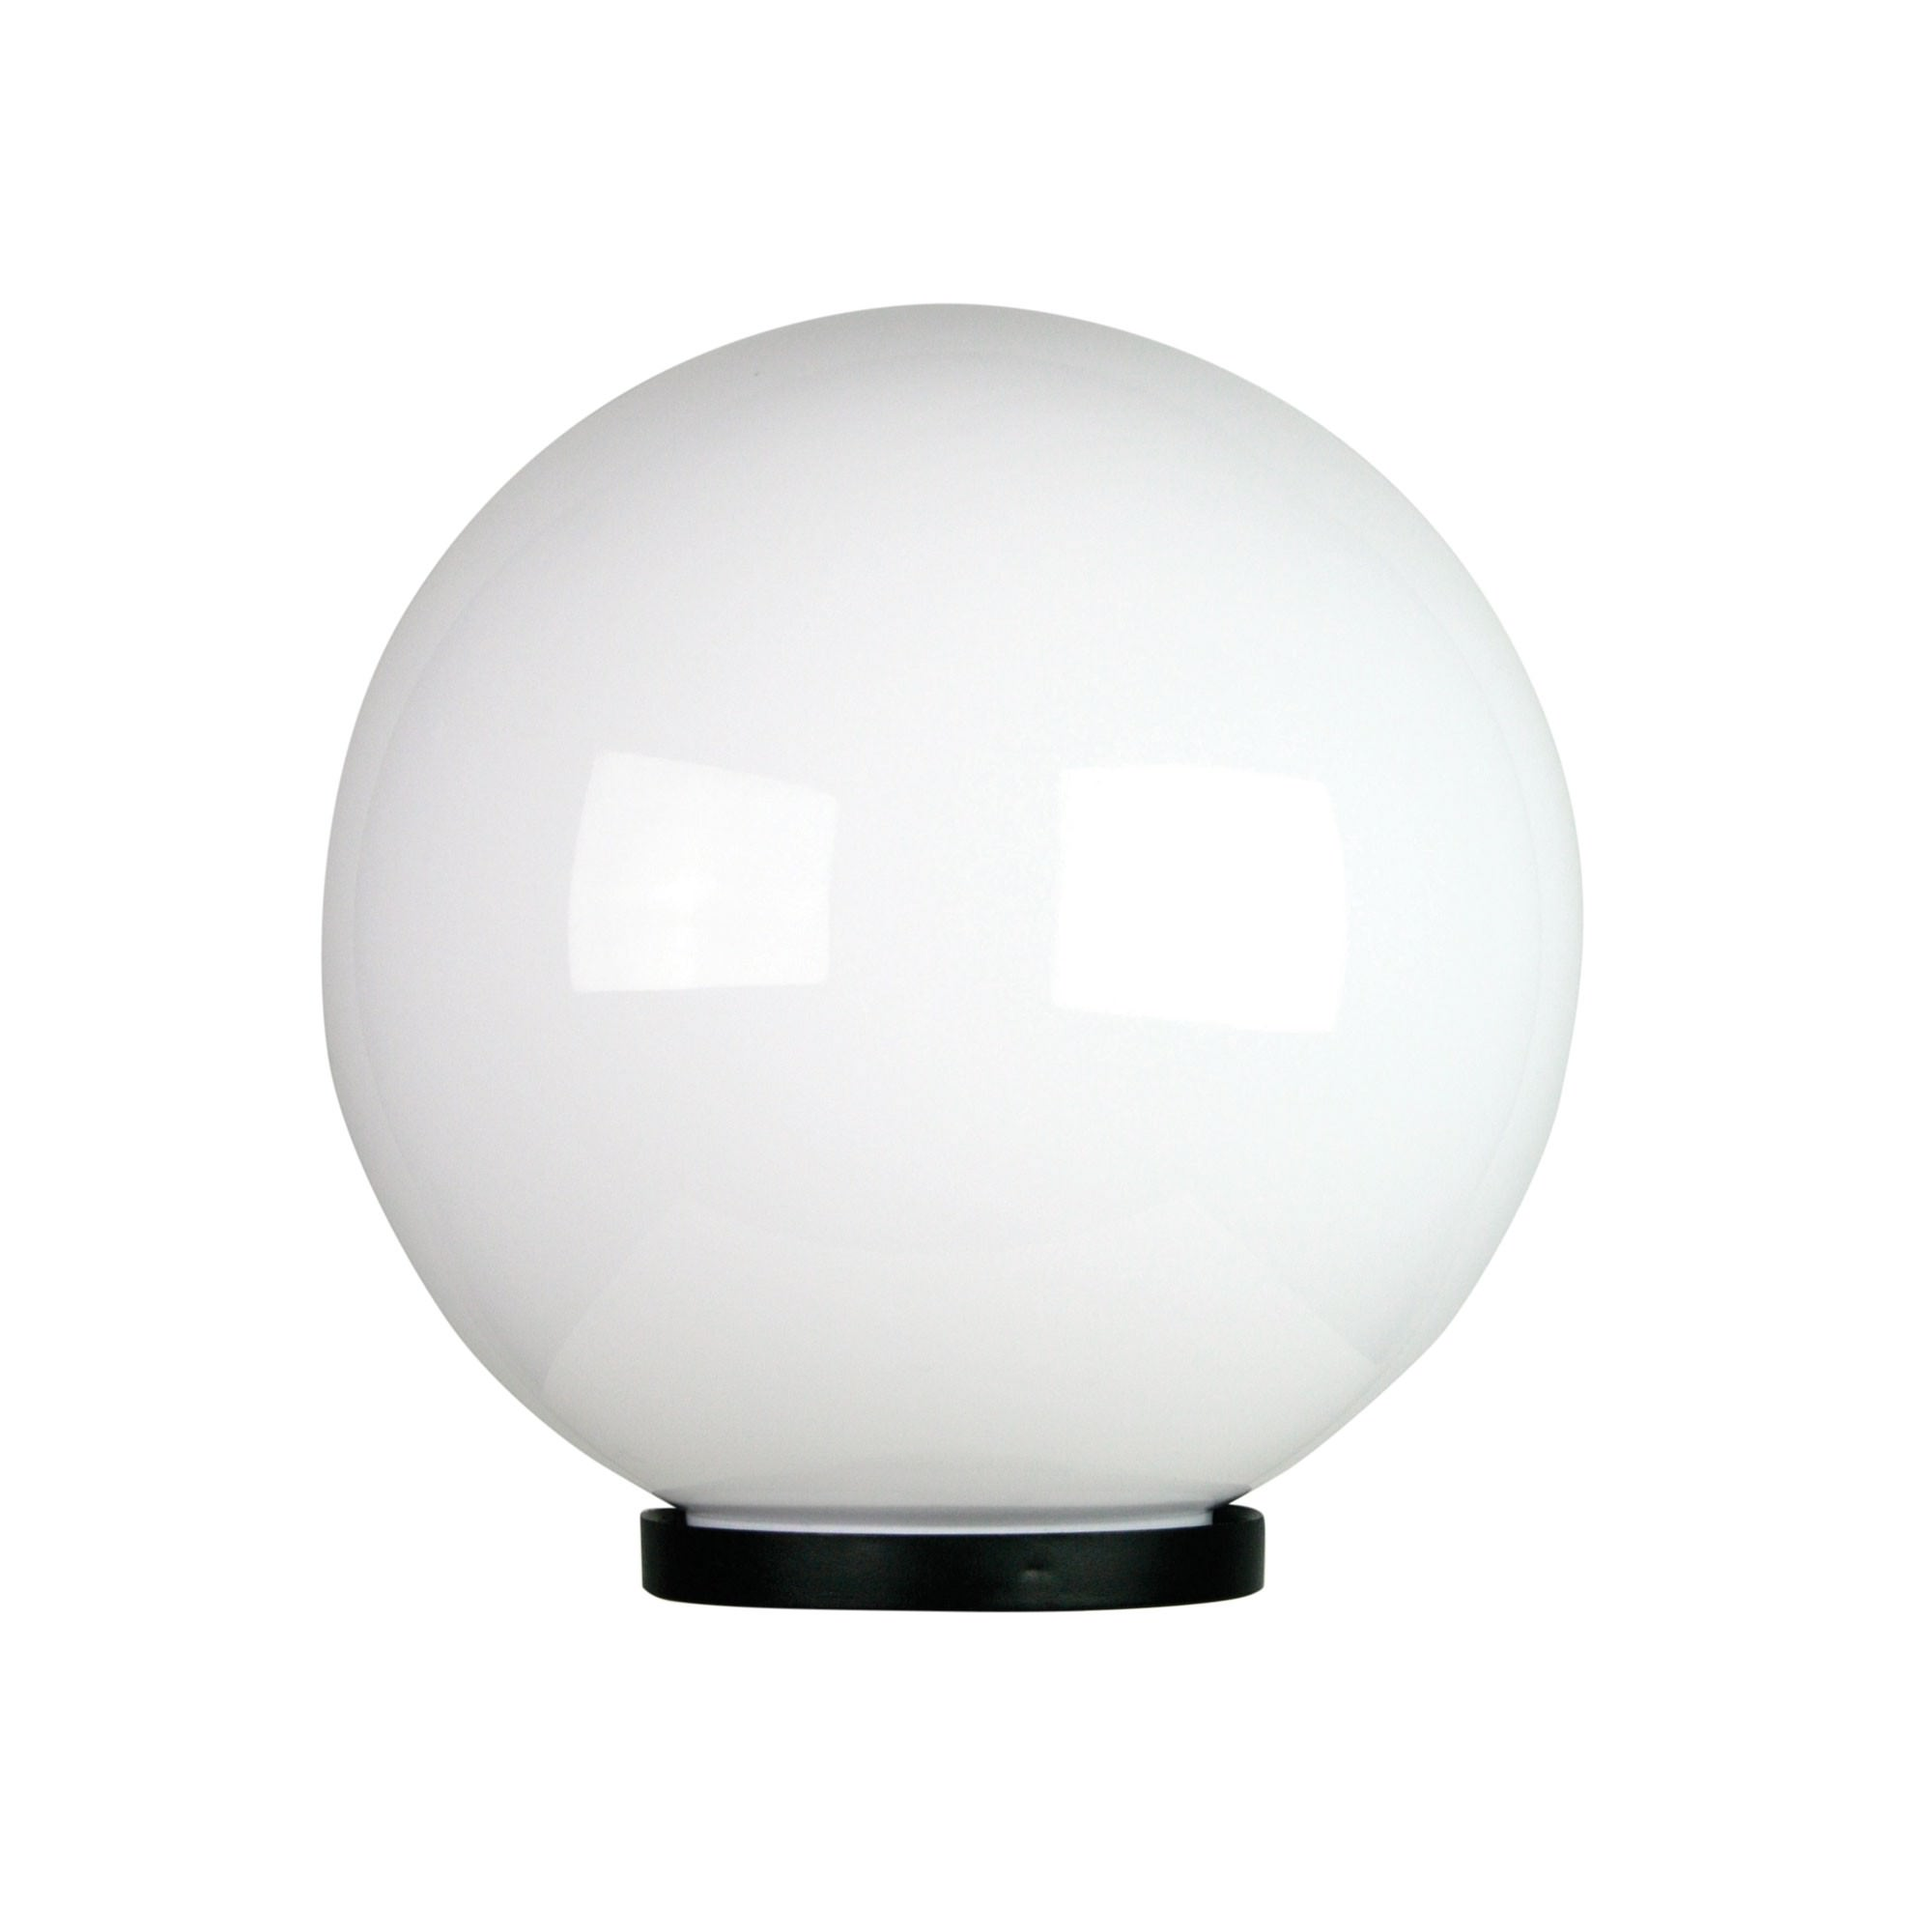 Galactic IP44 Exterior Sphere Post Top Light, 30cm